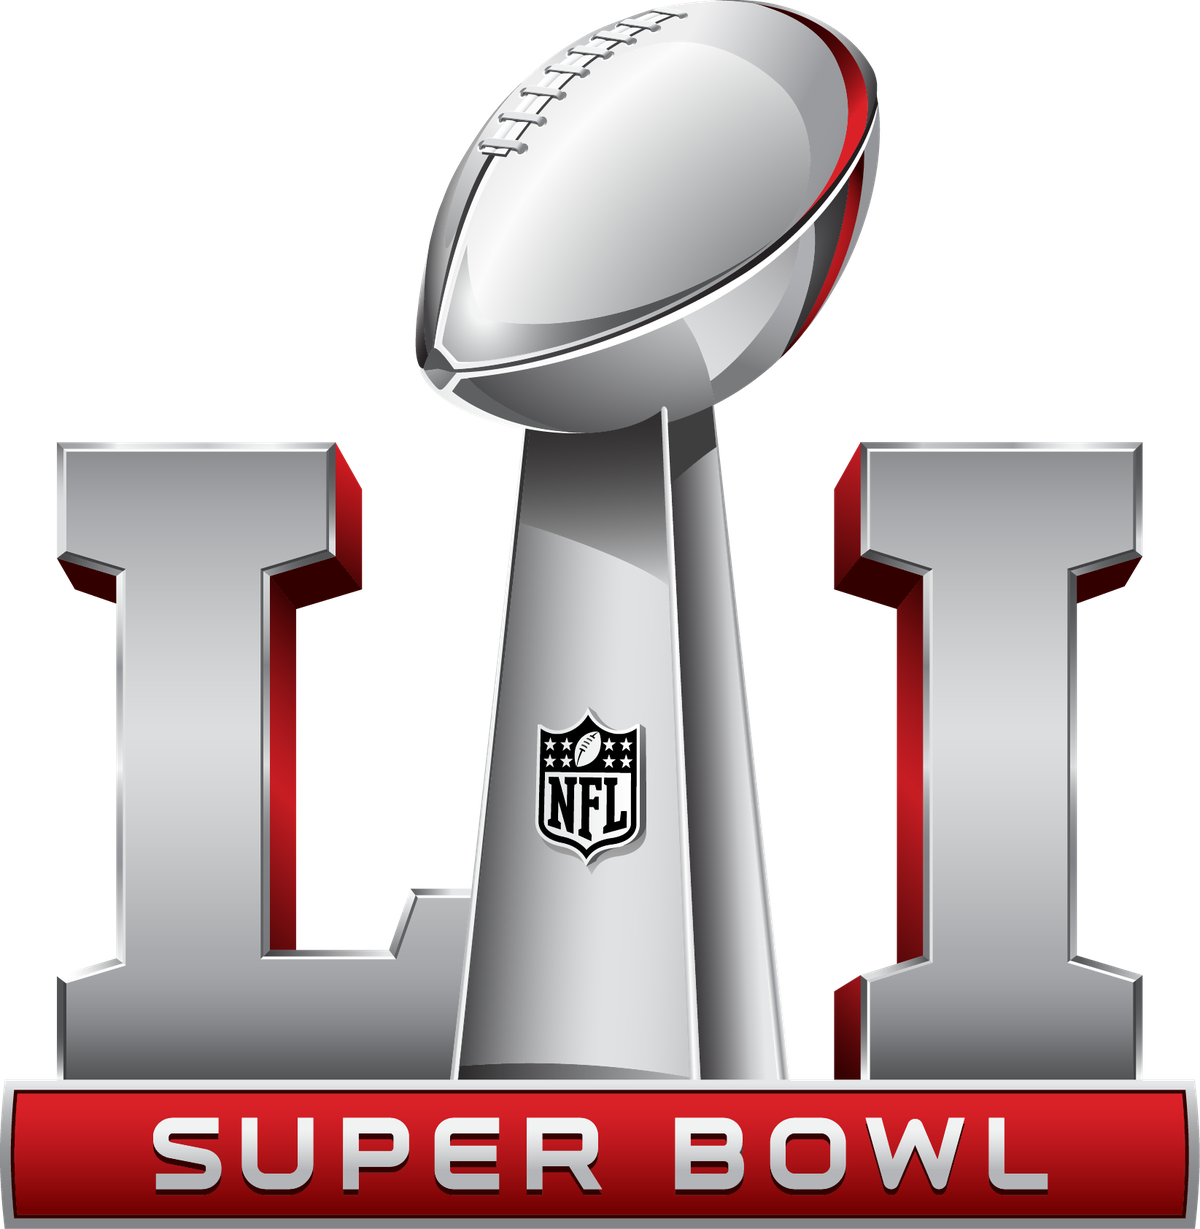 Super bowl li png. Game time tv channel